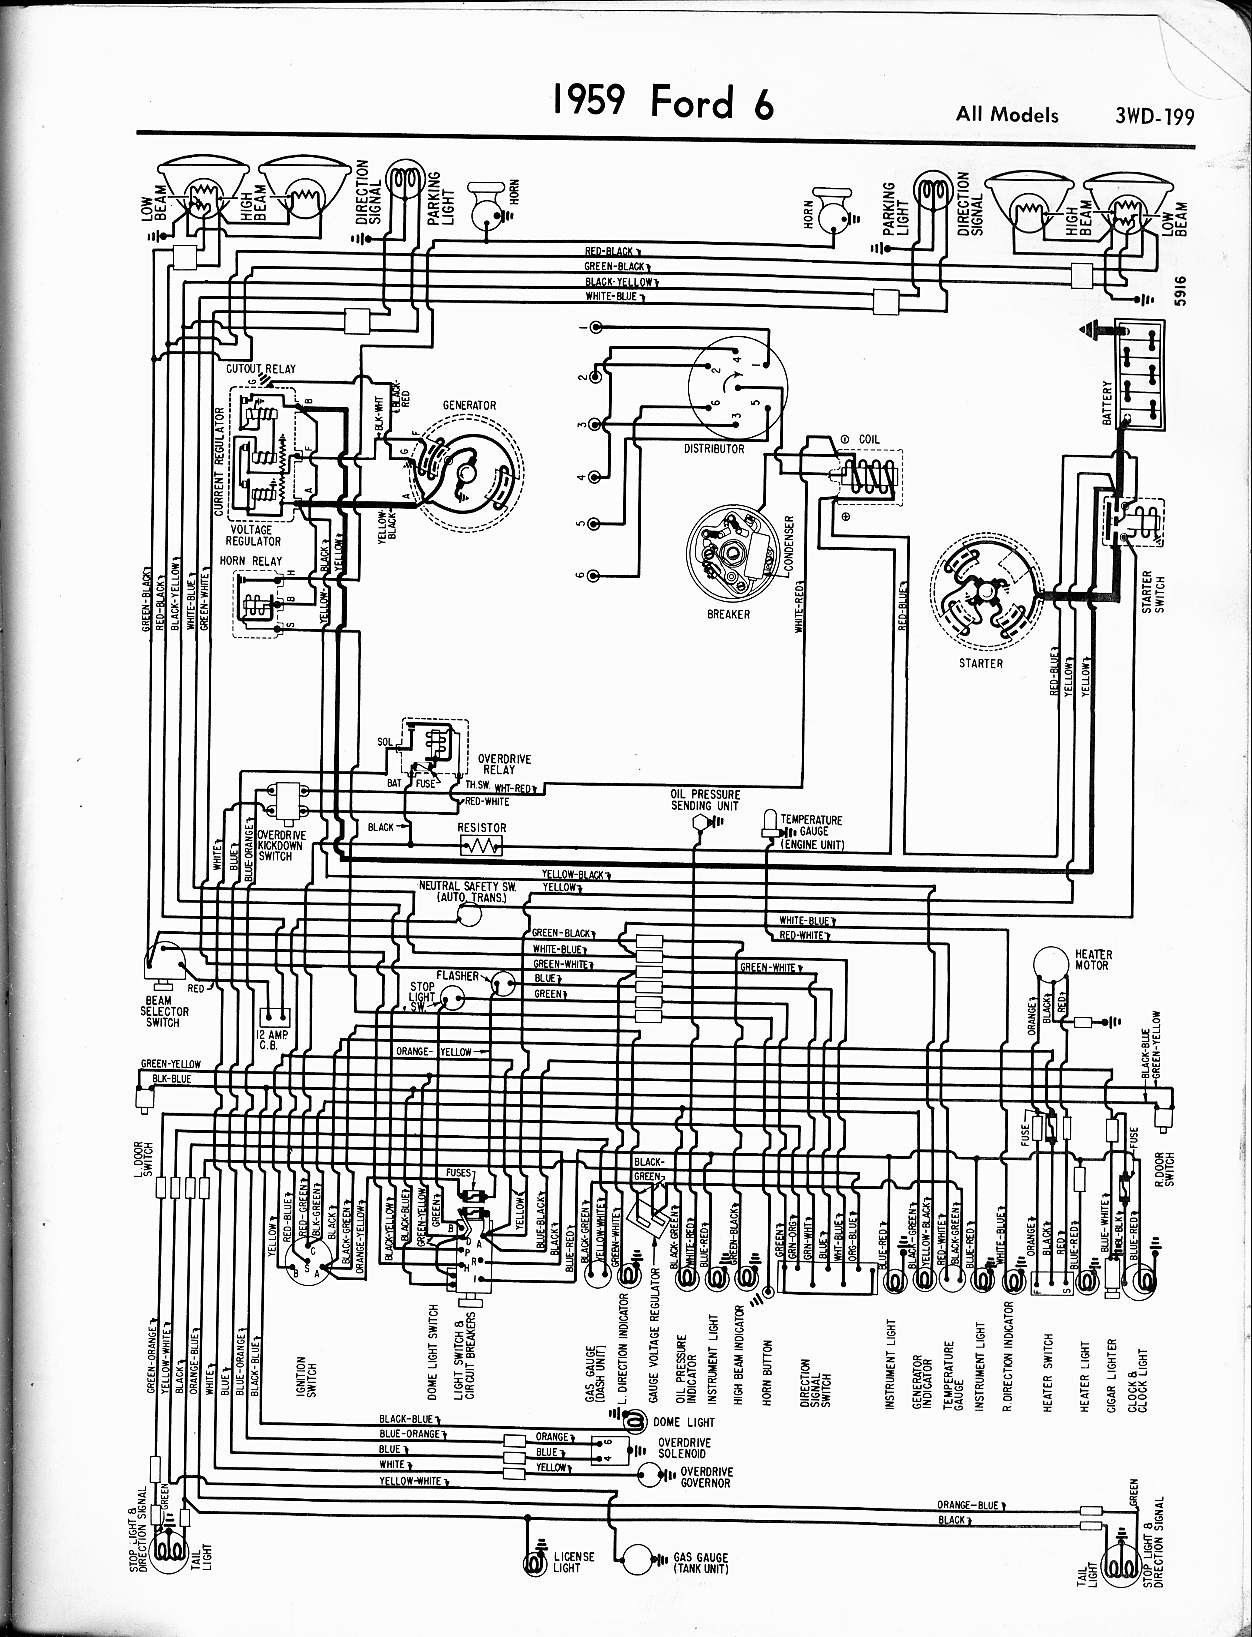 1966 ford f 100 fuel gauge wiring wiring diagram electricity rh agarwalexports co